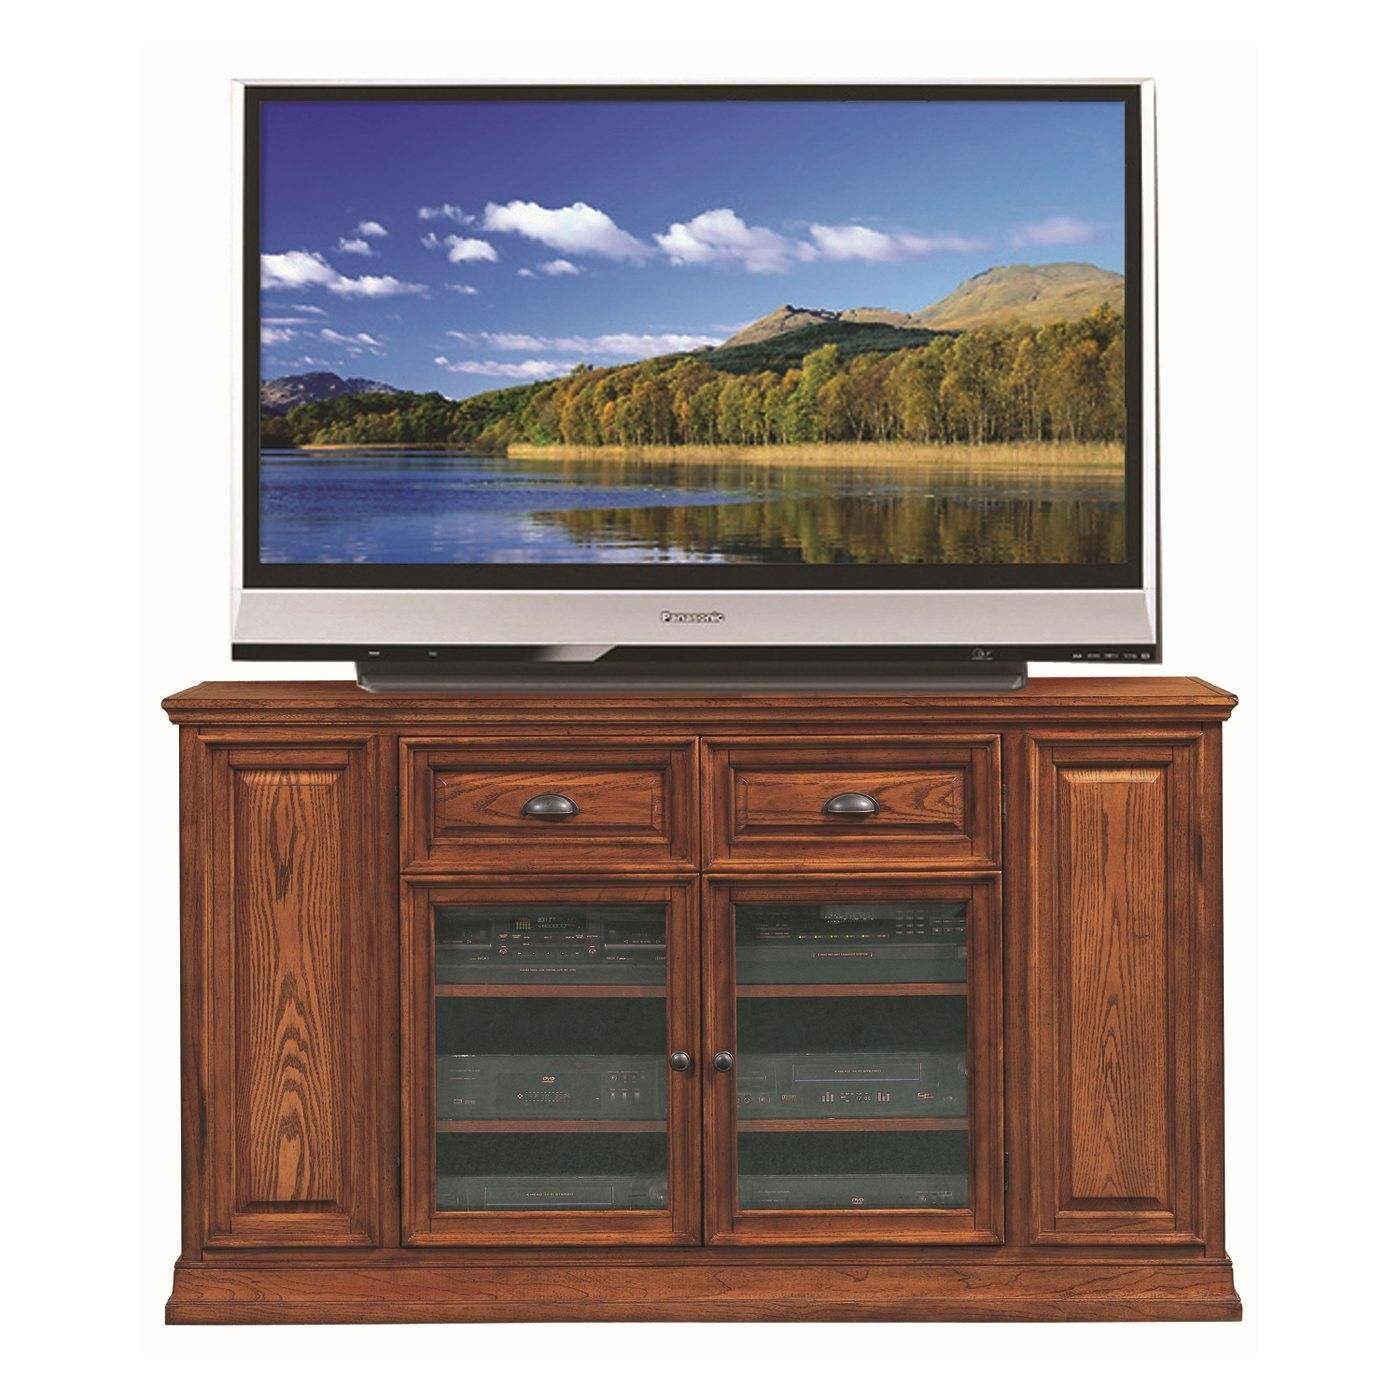 Elegant Matte Varnished Maple Wood Tall Tv Stand For Bedroom With with regard to Maple Wood Tv Stands (Image 3 of 15)